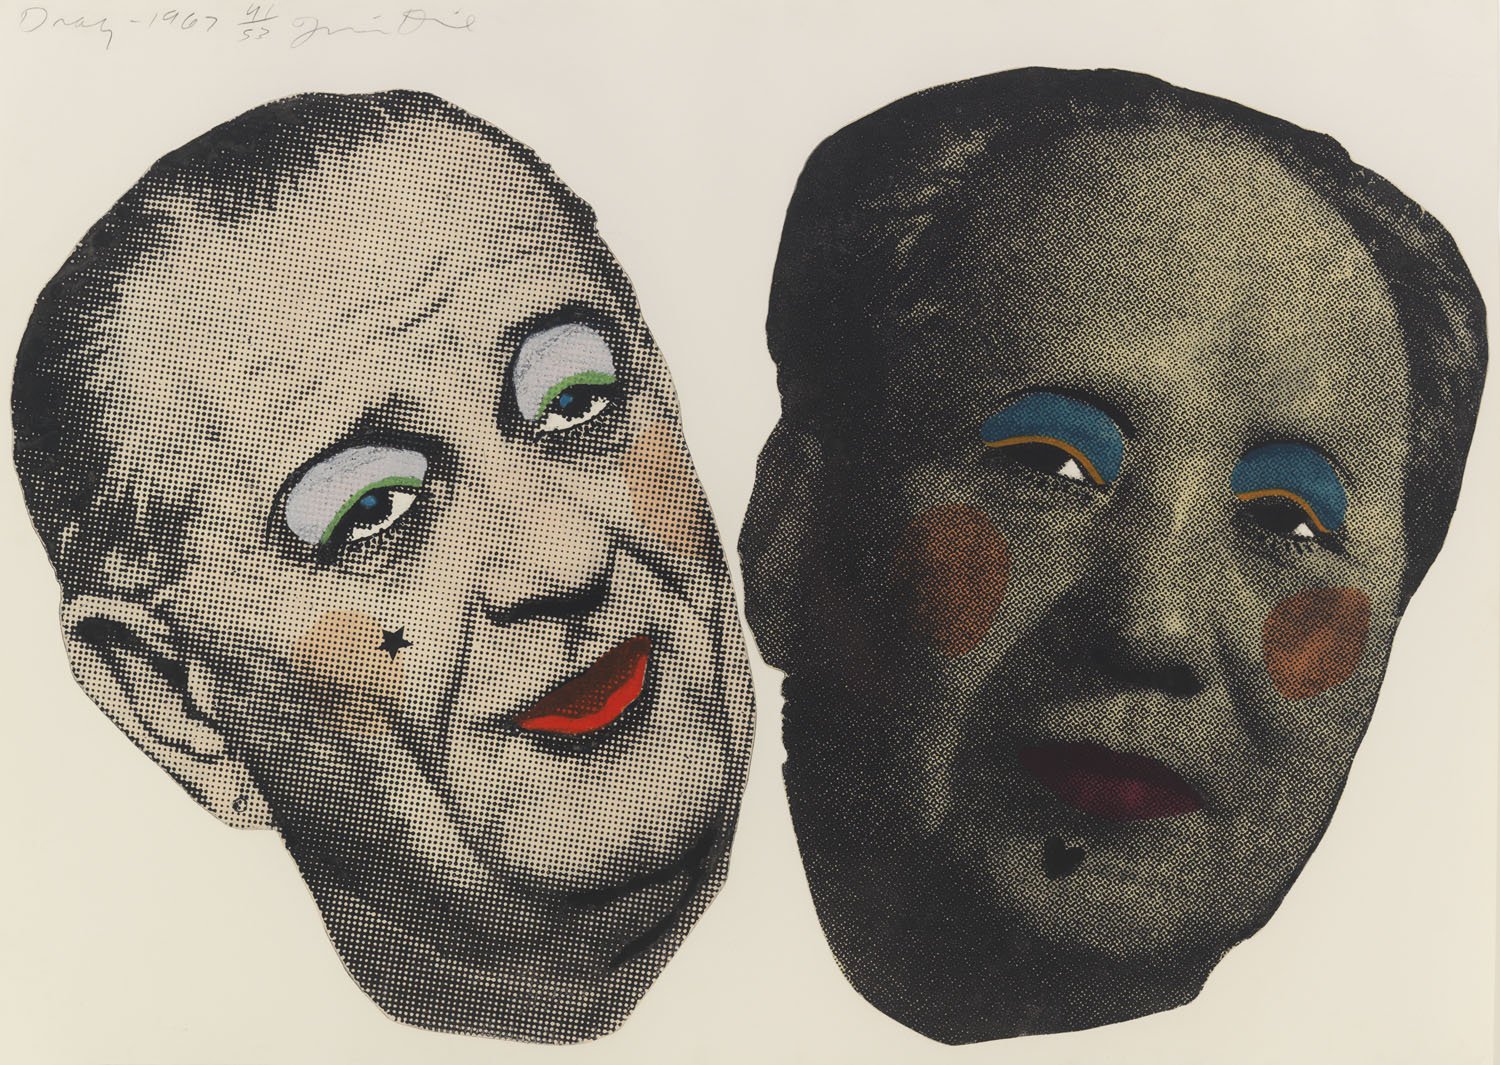 Jim Dine, Drag: Johnson and Mao, 1967. Photoetching. Collection of the New School, Art Collection, New York, NY. Photo by Tom Van Eynde